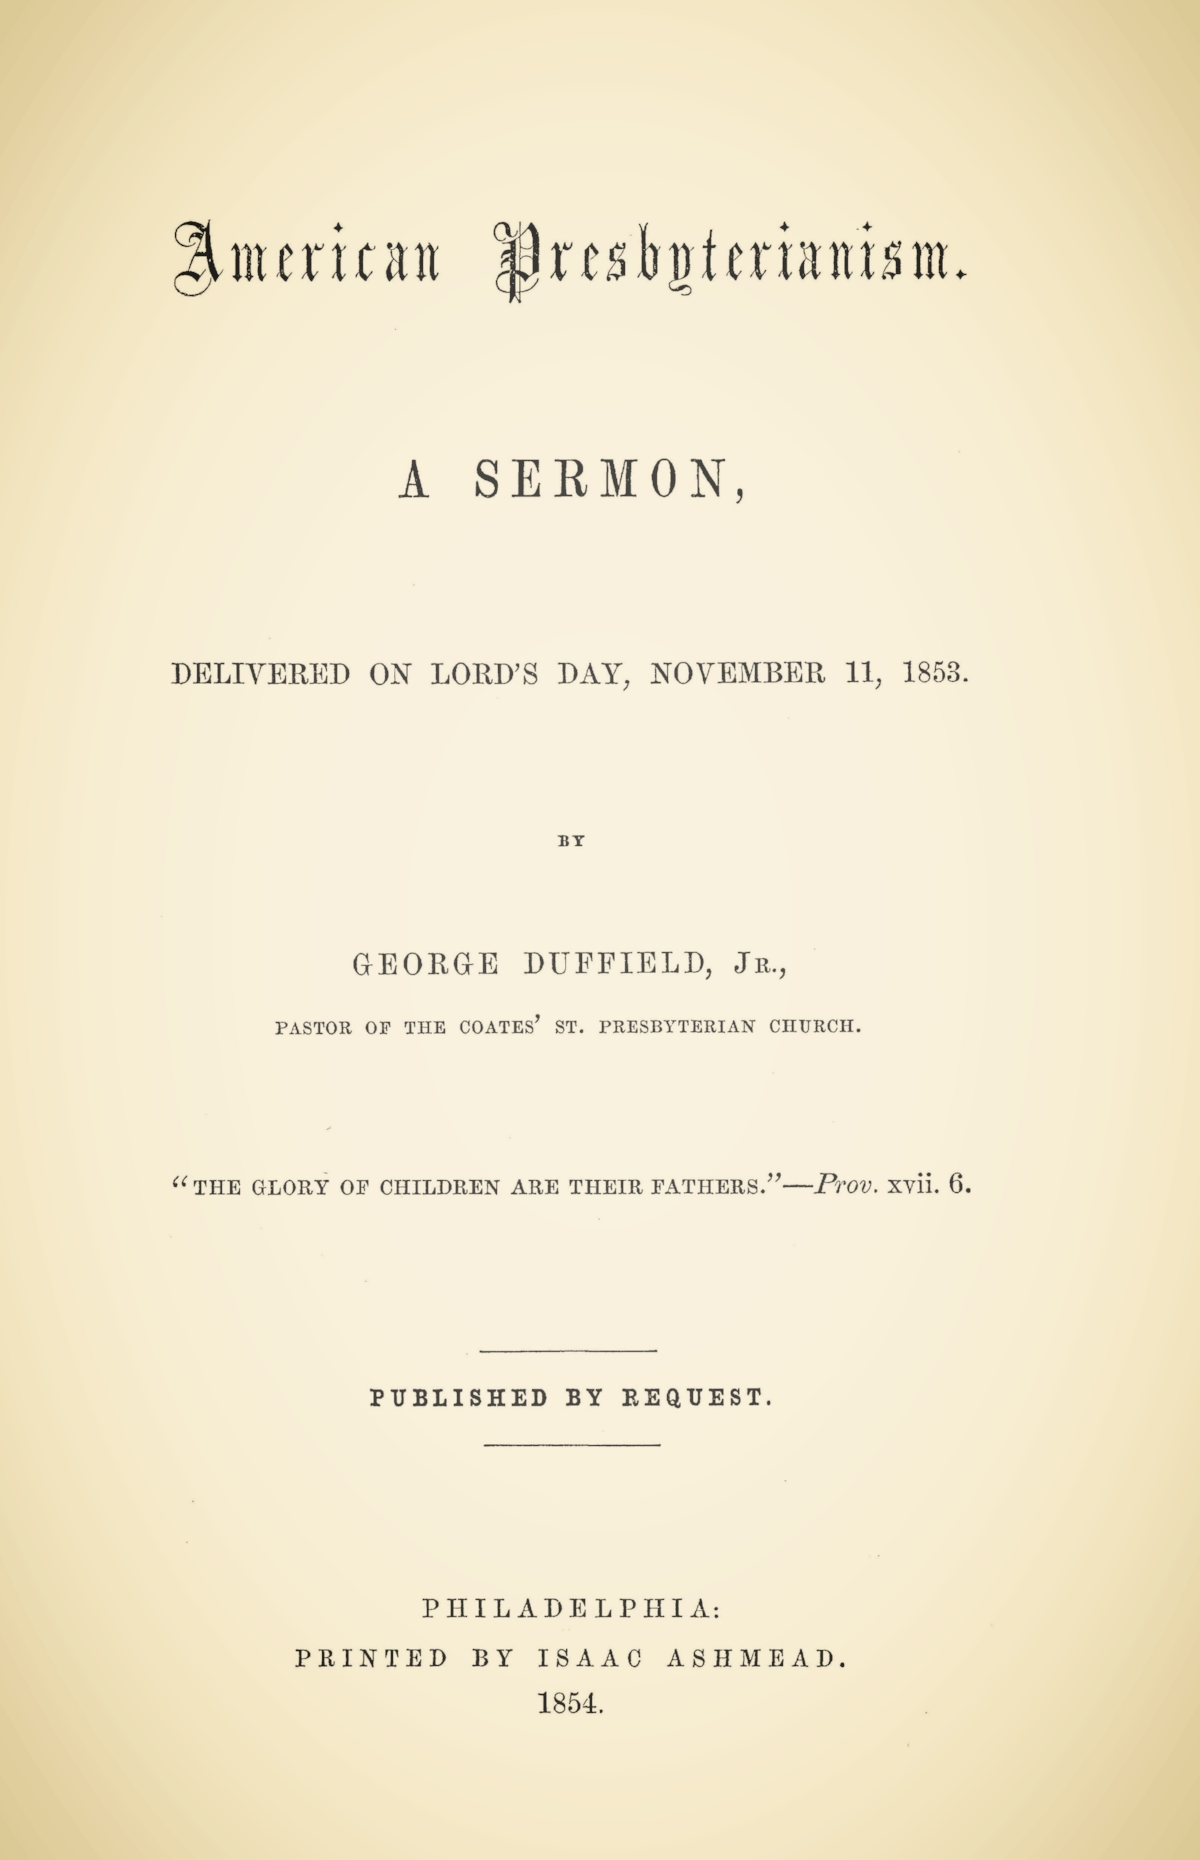 Duffield, IV, George, American Presbyterianism Title Page.jpg